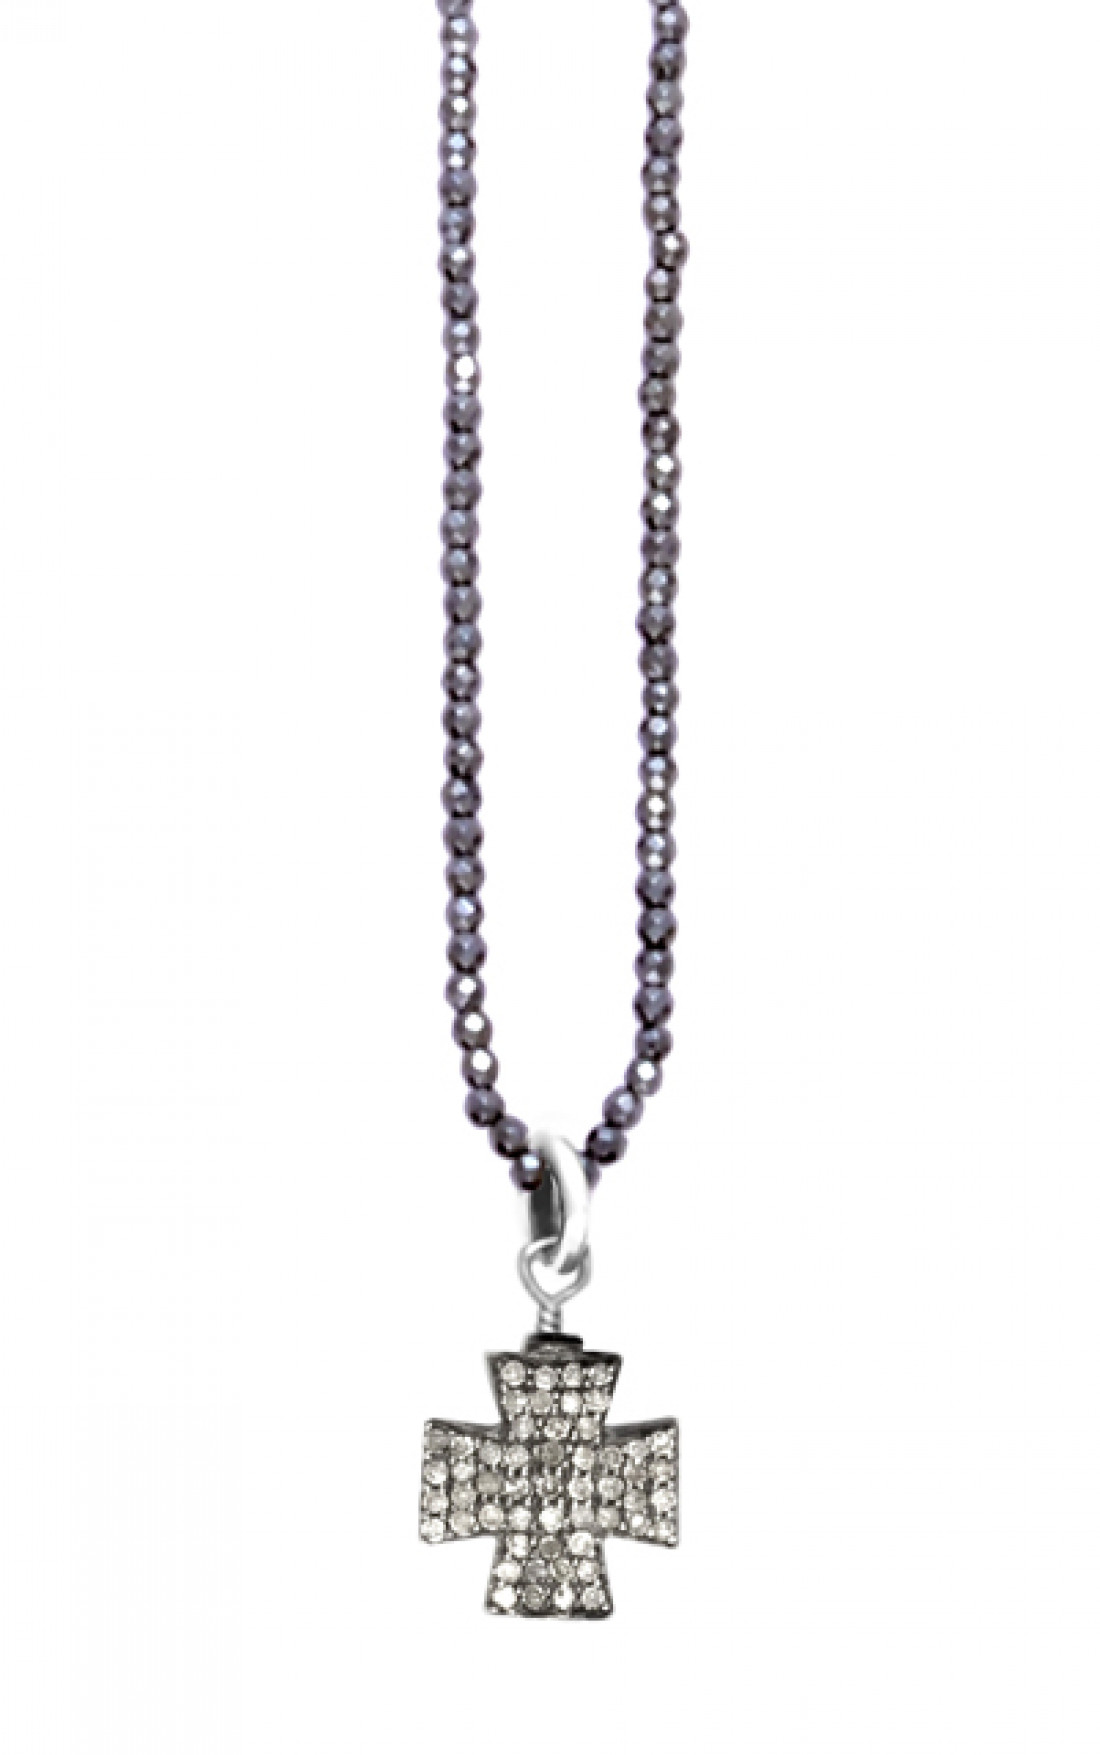 King Baby - Hematite Necklace With Pave Diamond Cross (K56-5111)